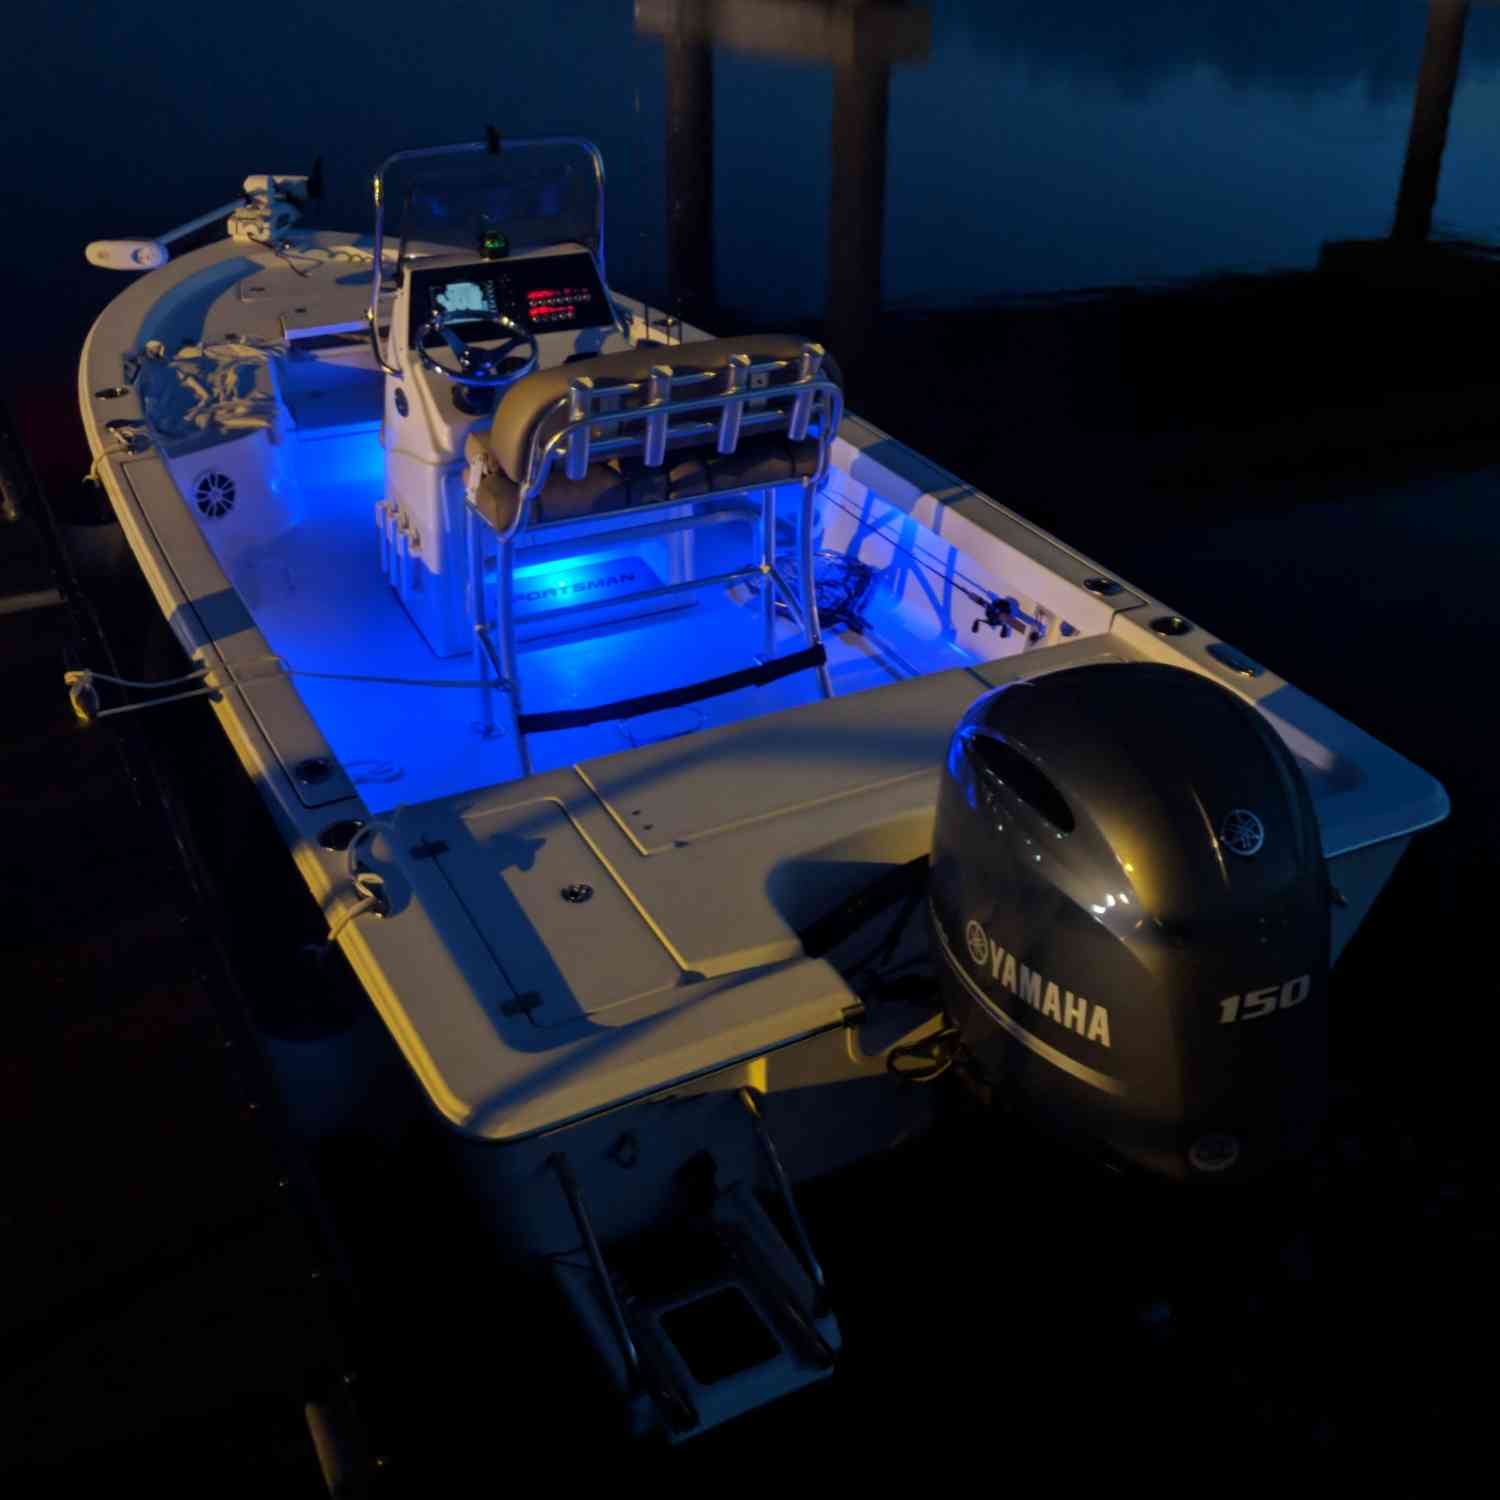 Title: Ready to Roll - Summertime bite is Pre-Dawn! - On board their Sportsman Masters 207 Bay Boat - Location: Charleston SC. Participating in the Photo Contest #SportsmanAugust2018